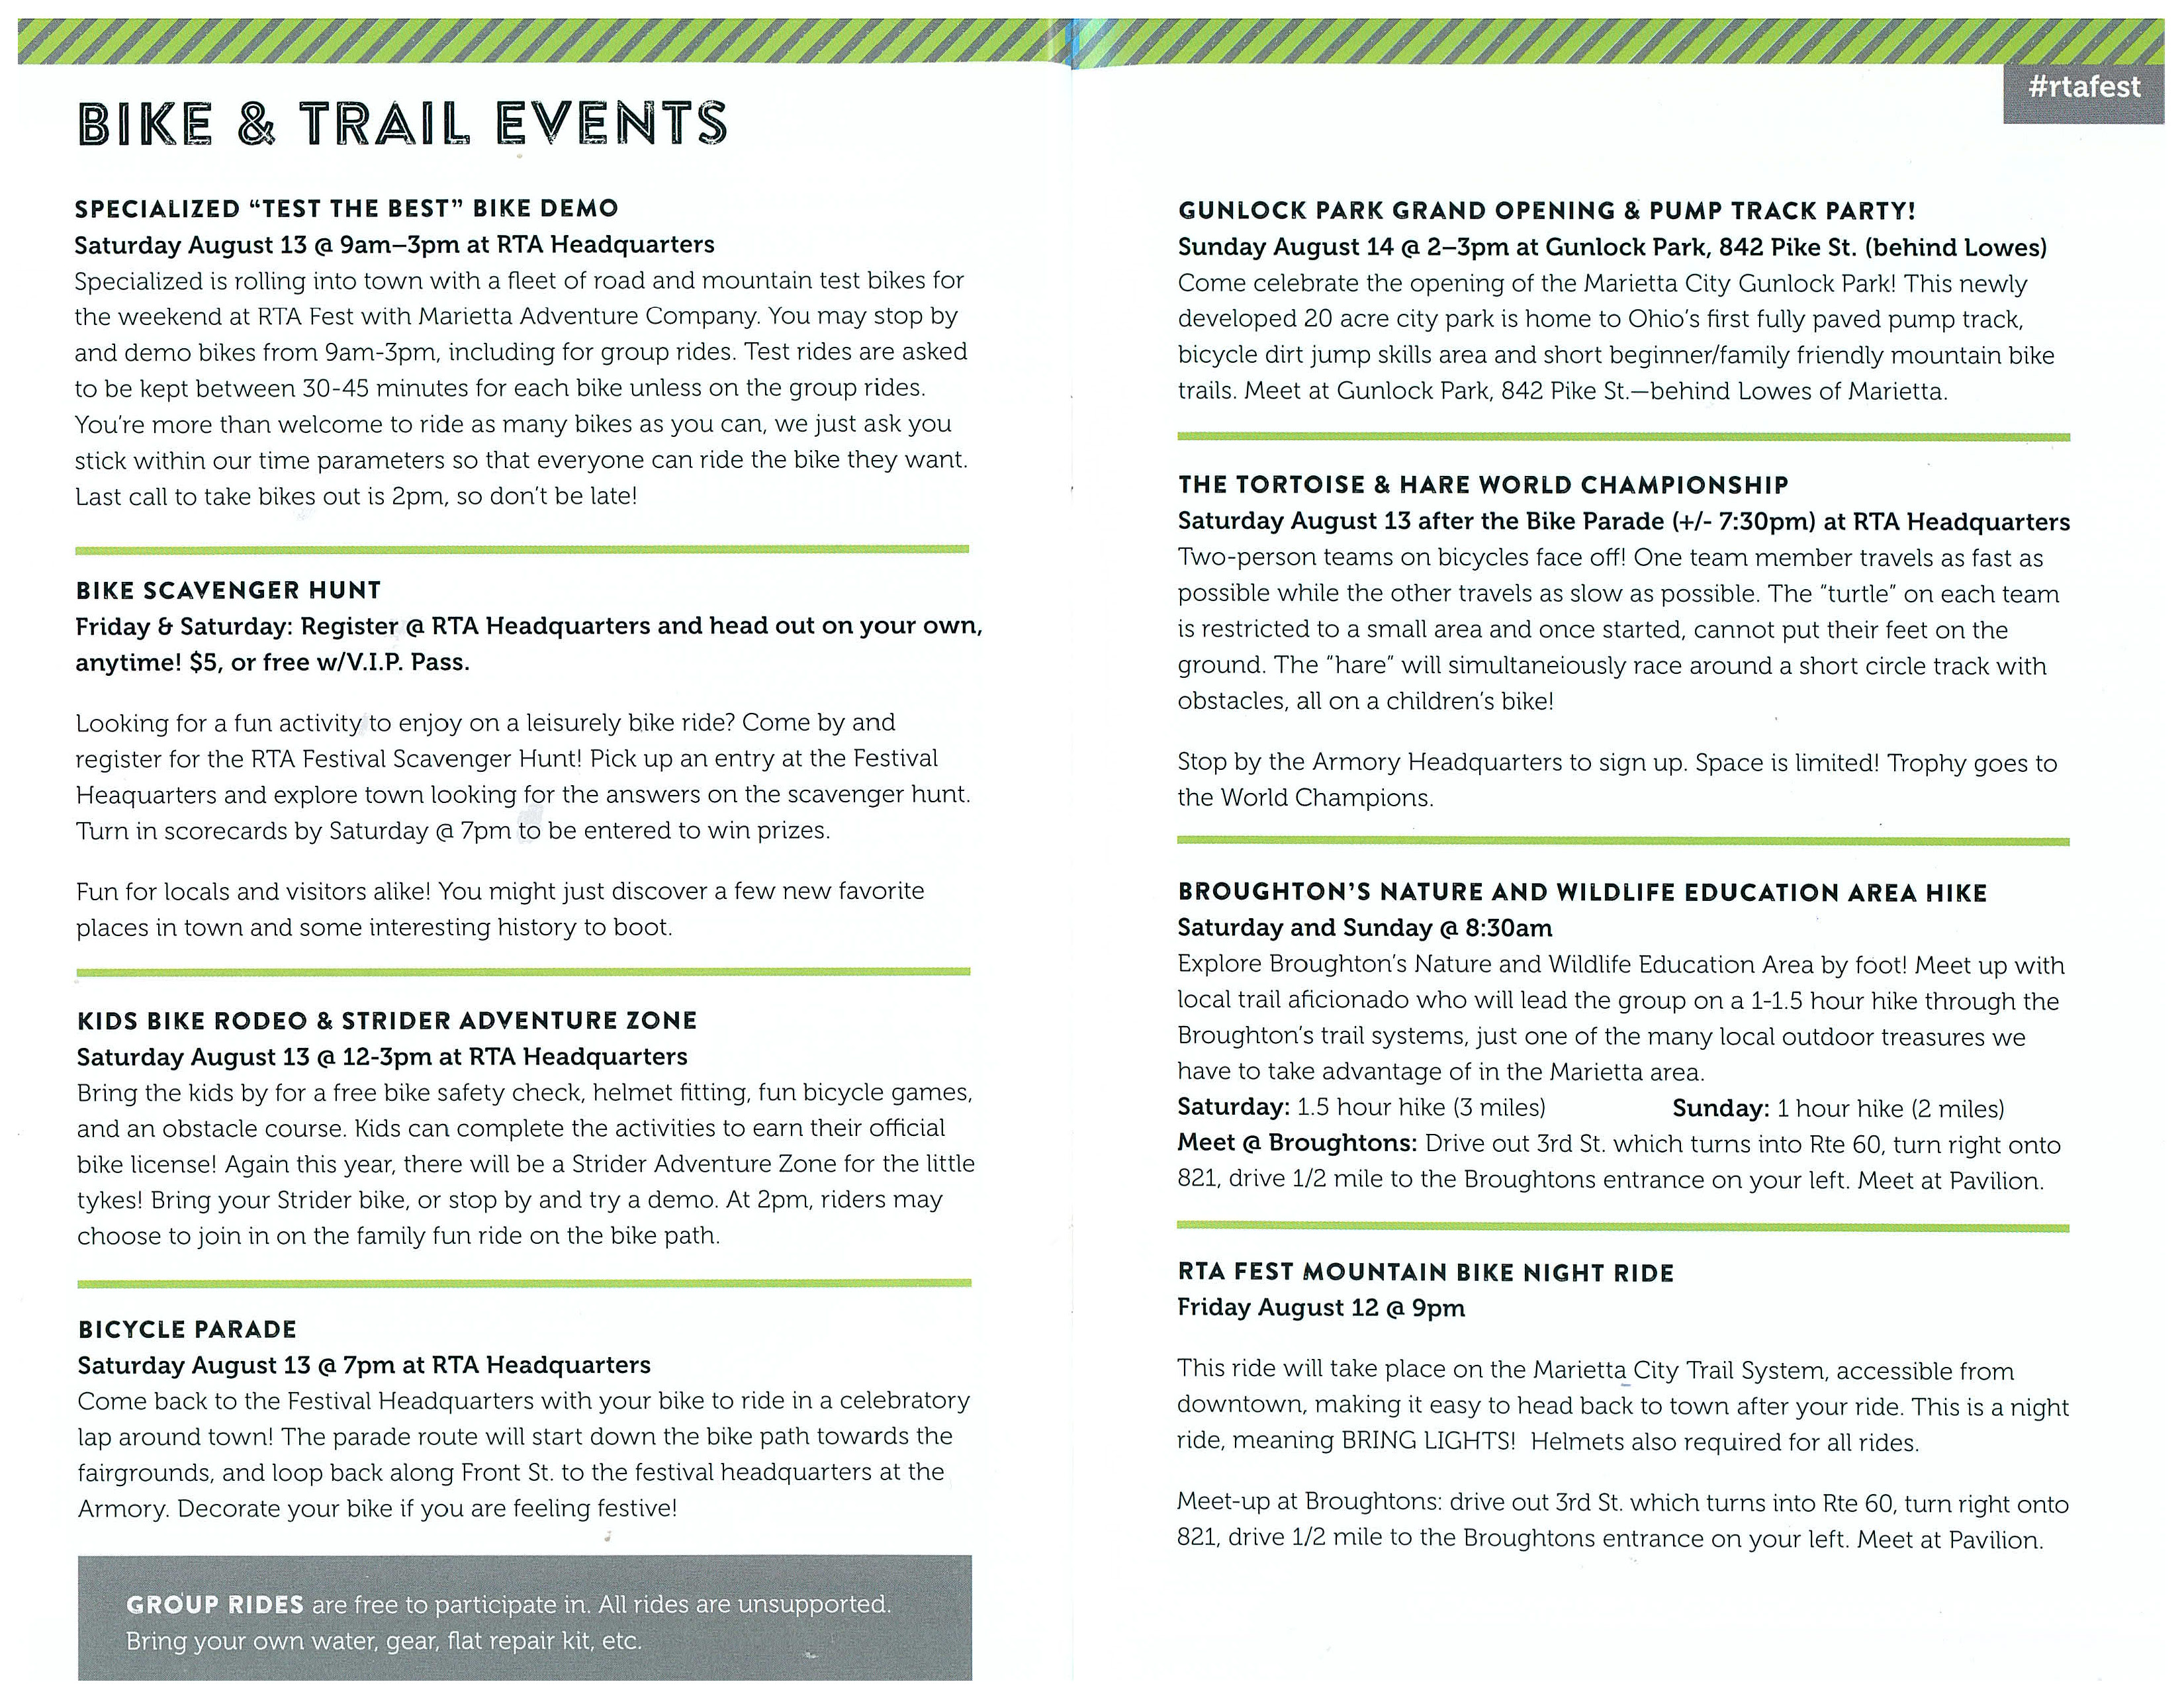 RTA Events - The Broughton Foundation